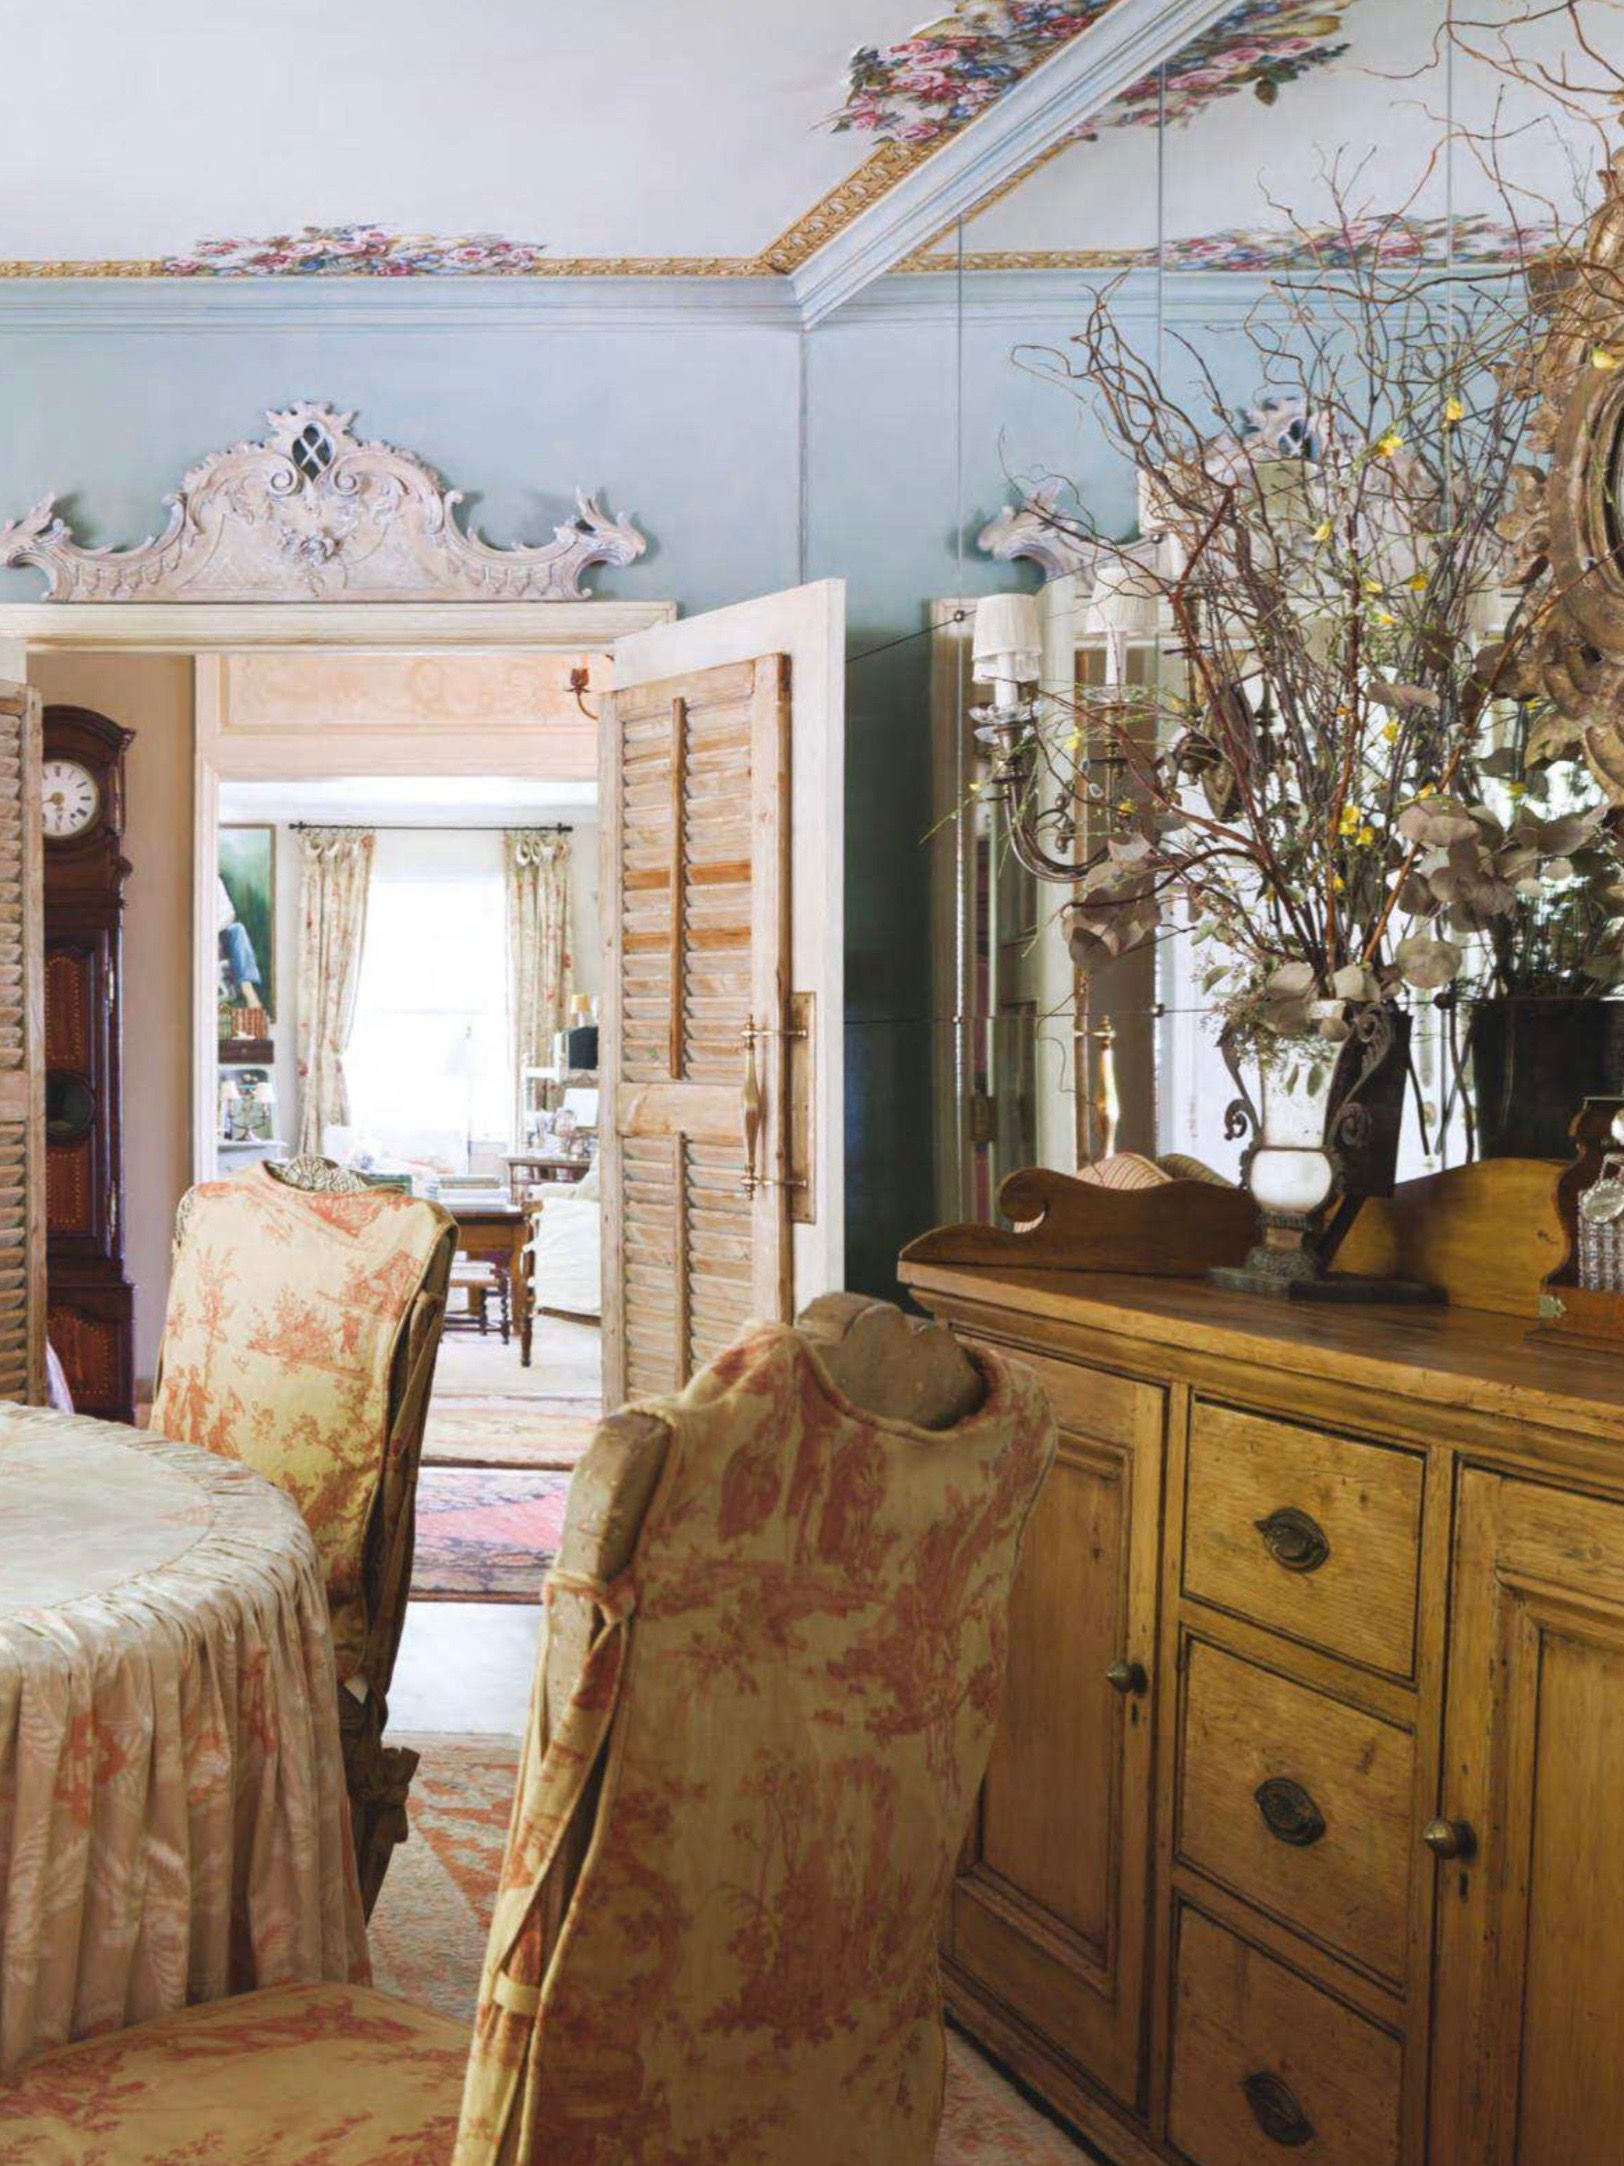 Pin by Ruth Dickerson on French Country   French chateau ... on French Creole Decorating Ideas  id=13753